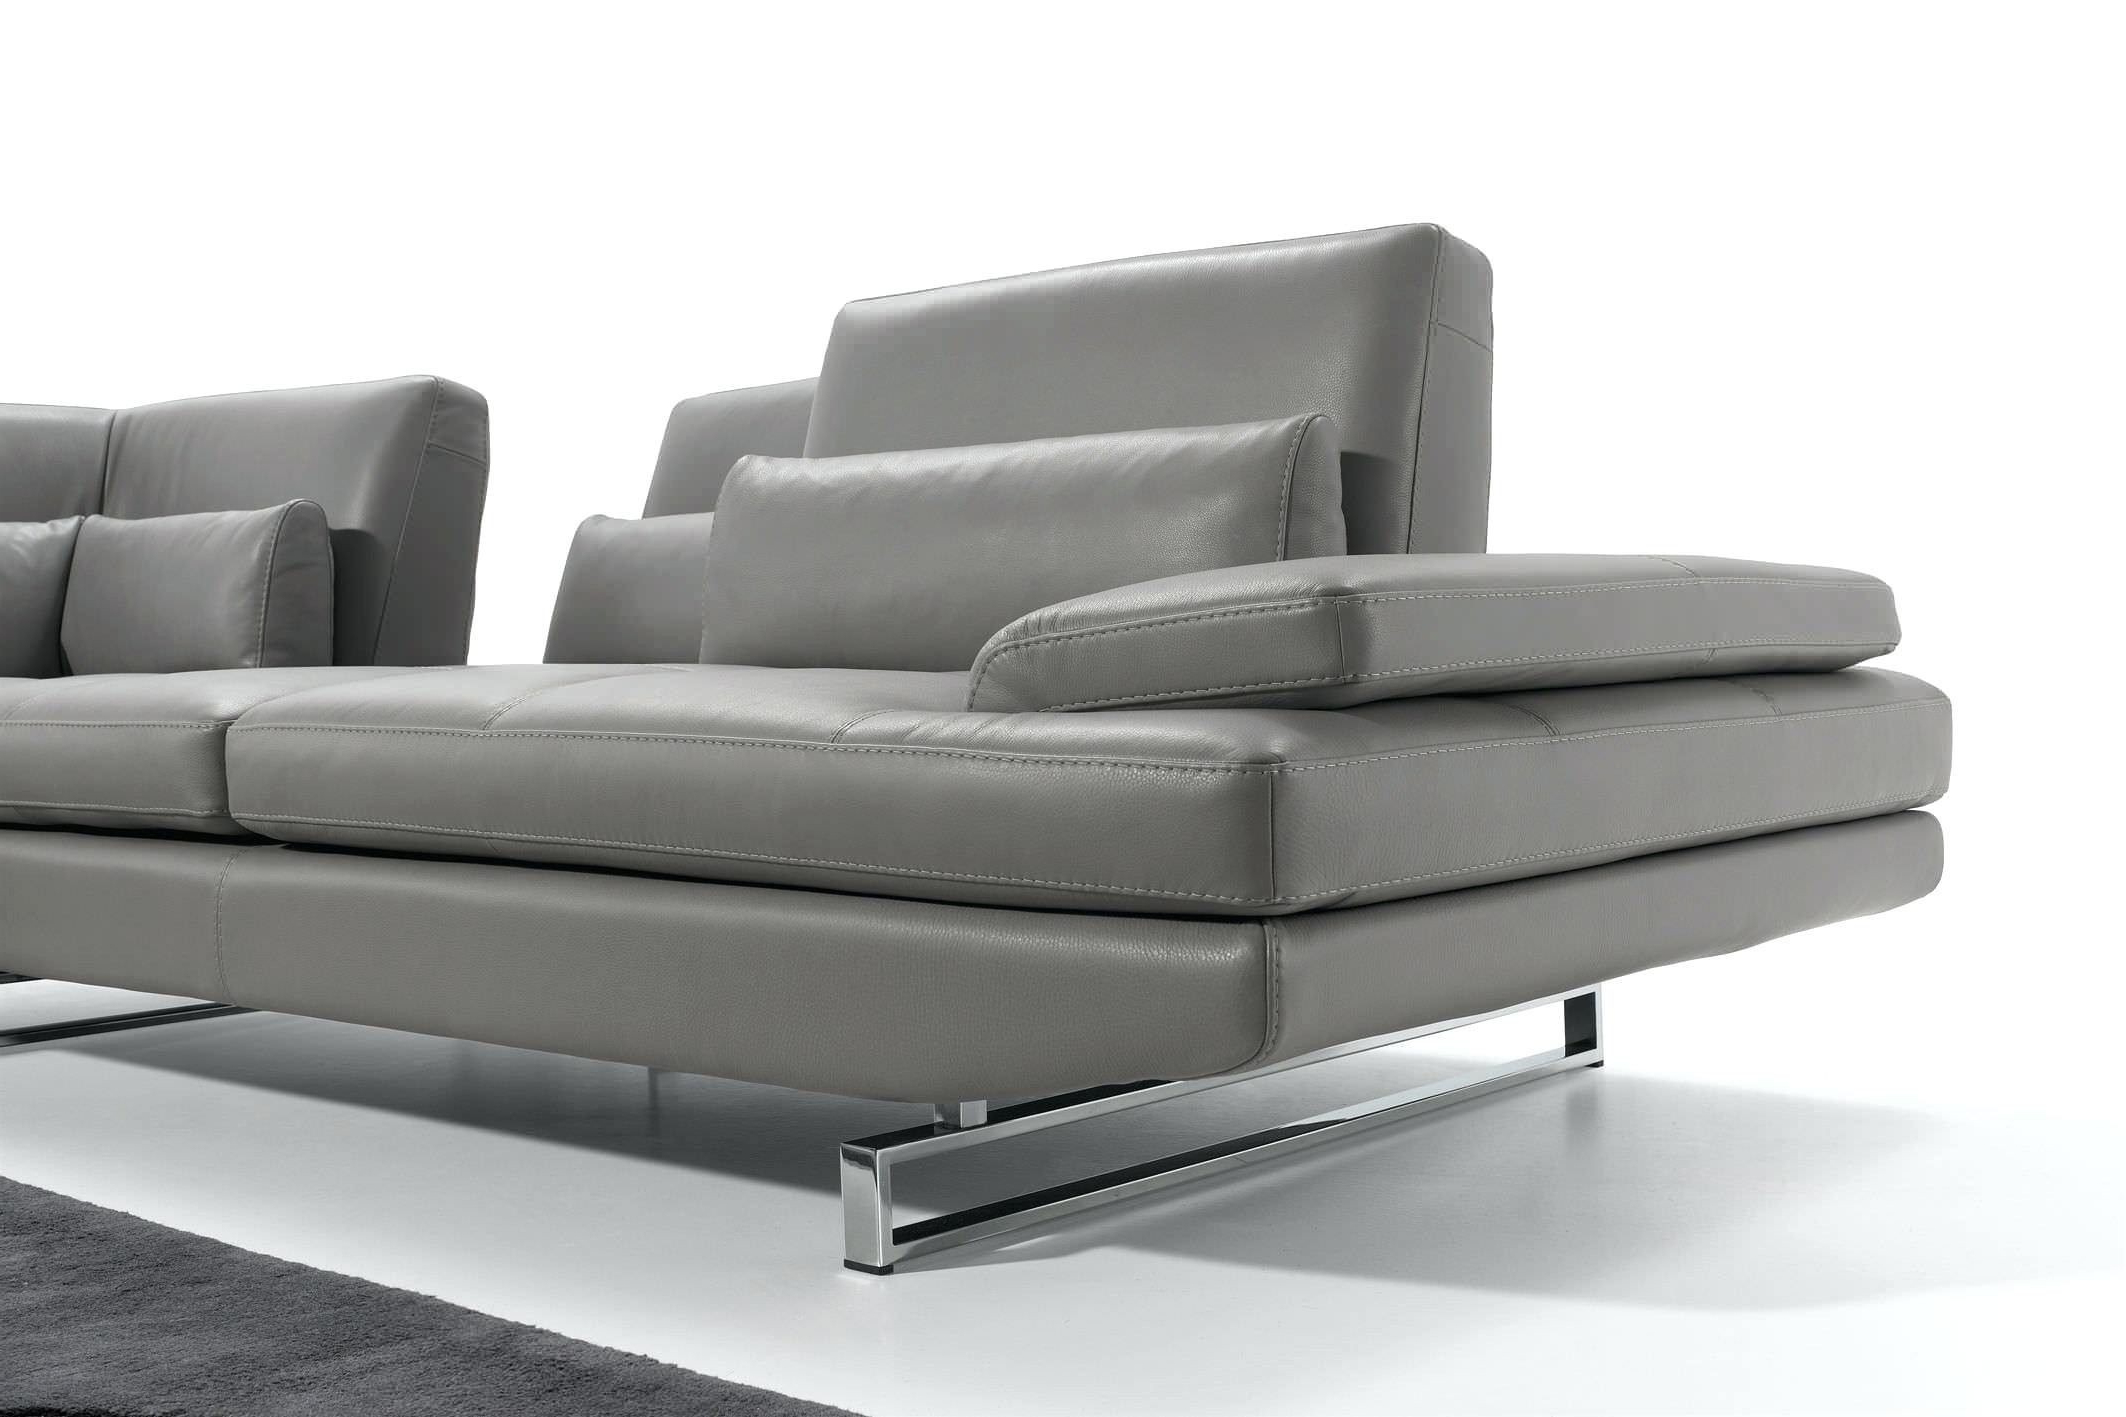 Sofa Relax Ikea E9dx Enchantant Canapà Relax 2 Places Ikea Dans Canape Relax 2 Places